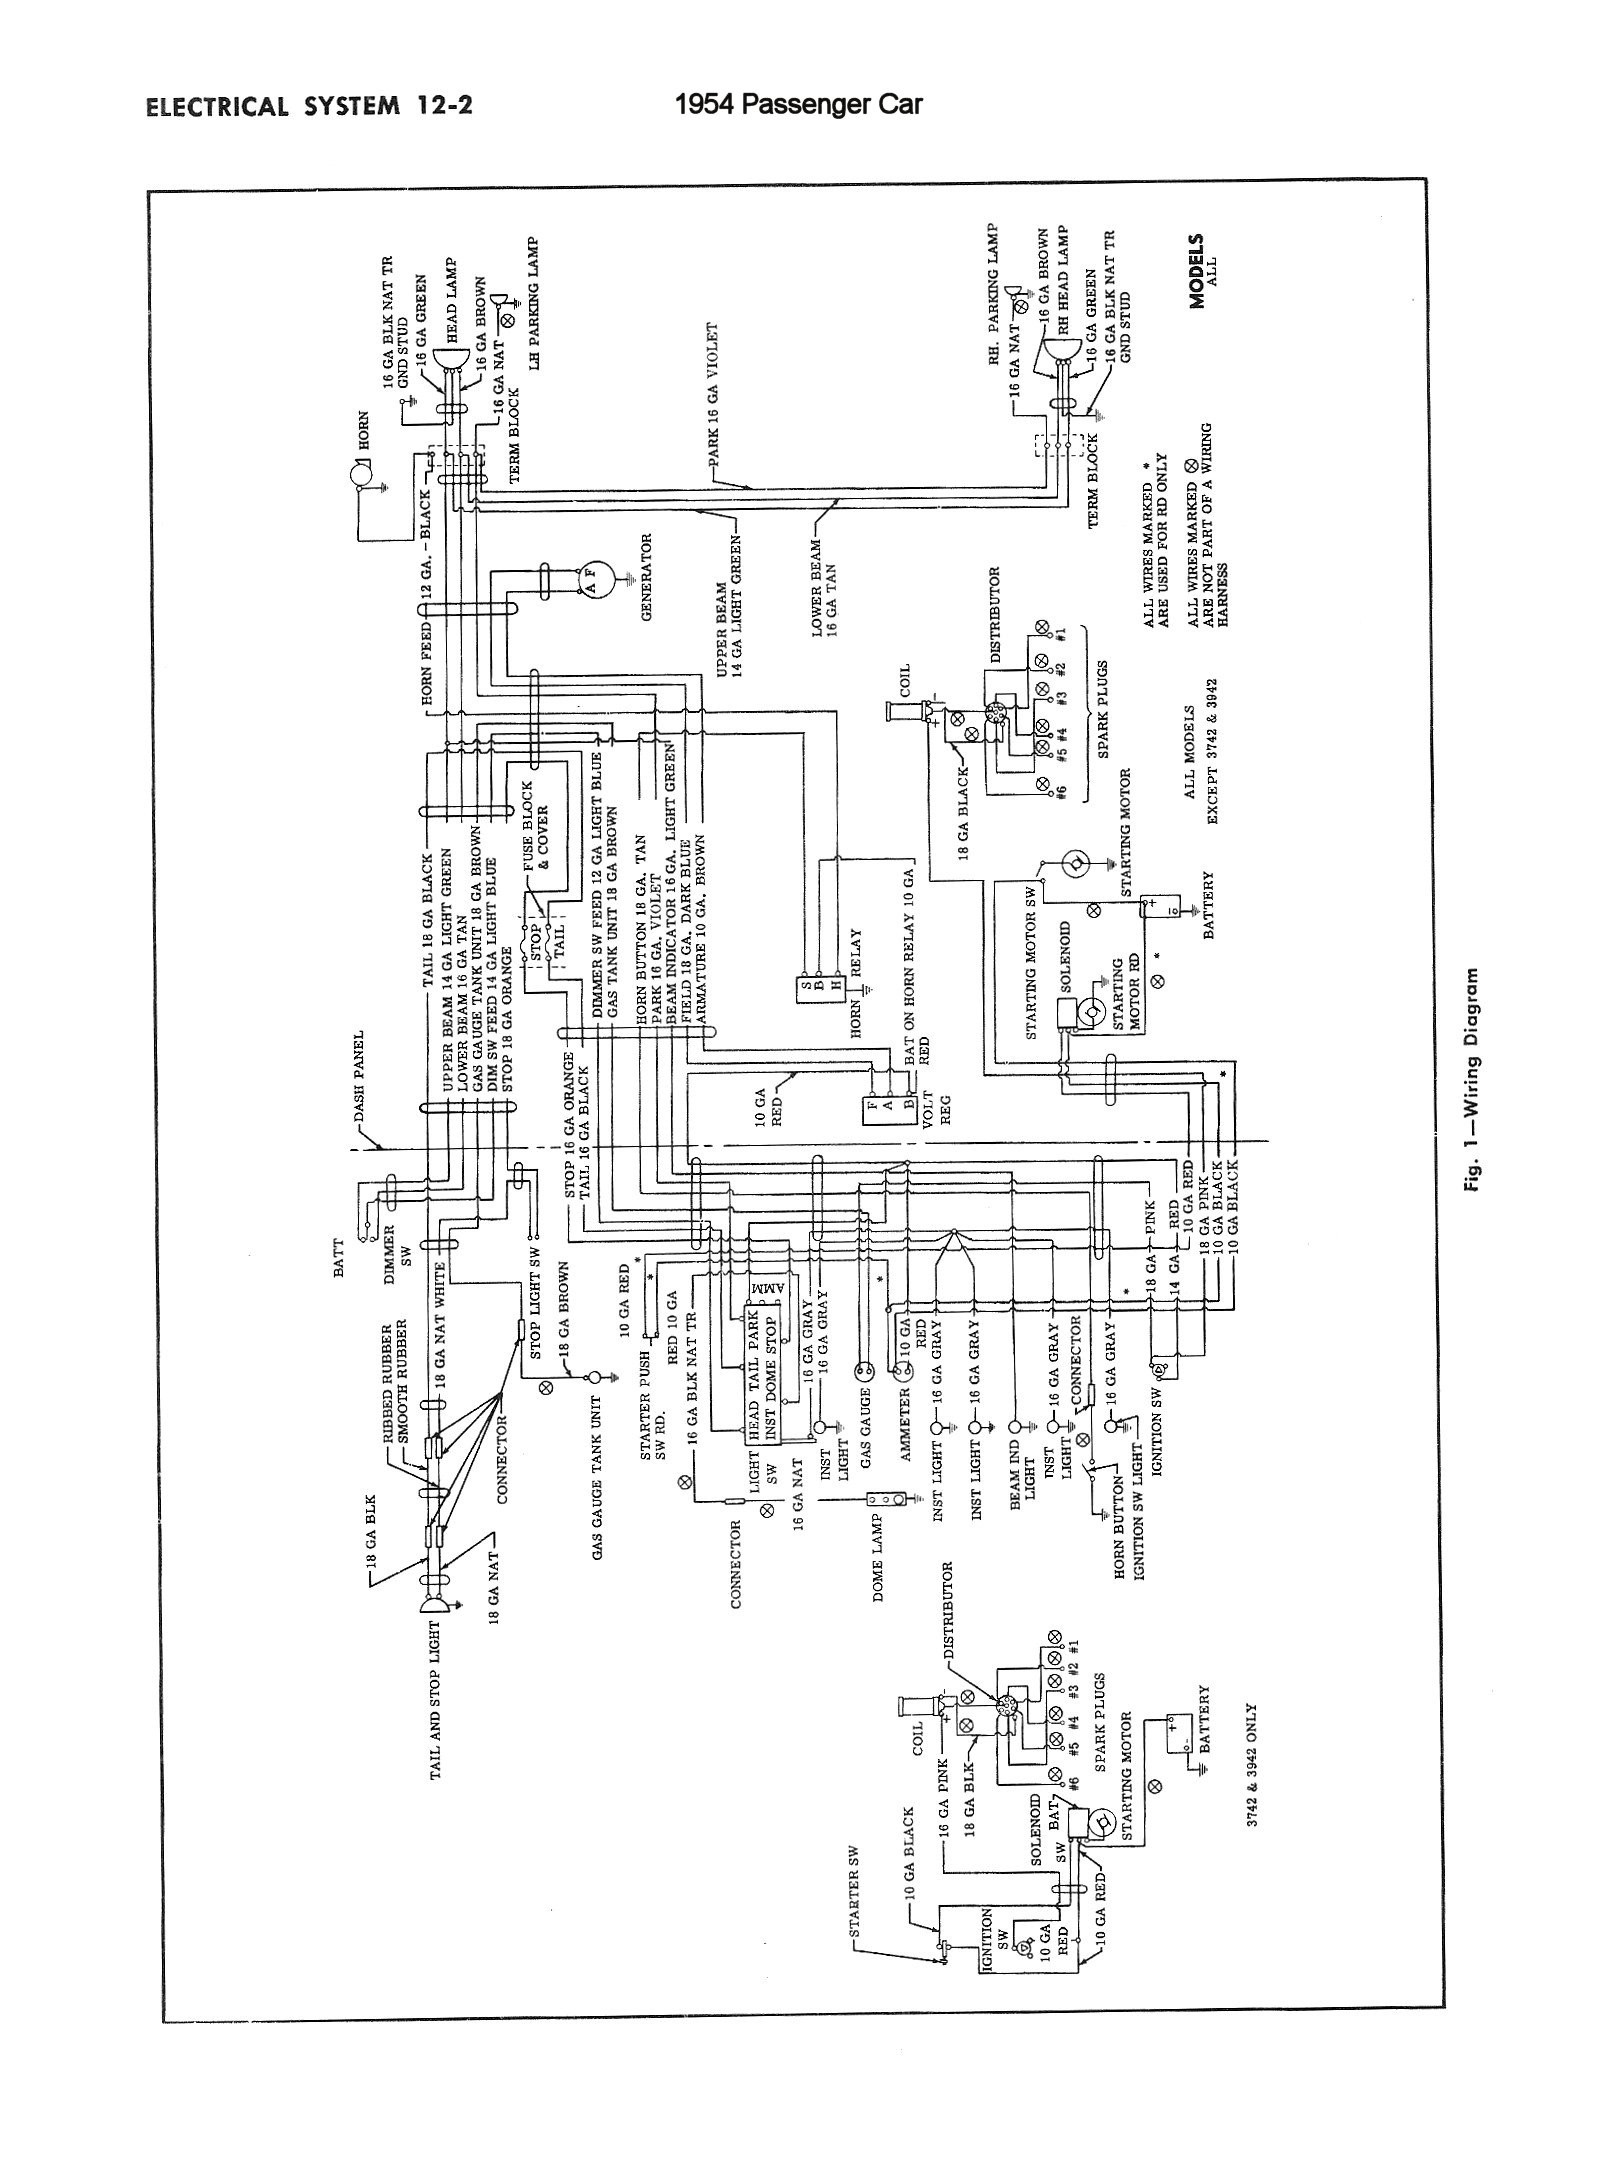 hight resolution of 1949 chevy deluxe wiring harness data diagram schematic 1949 chevy deluxe wiring harness